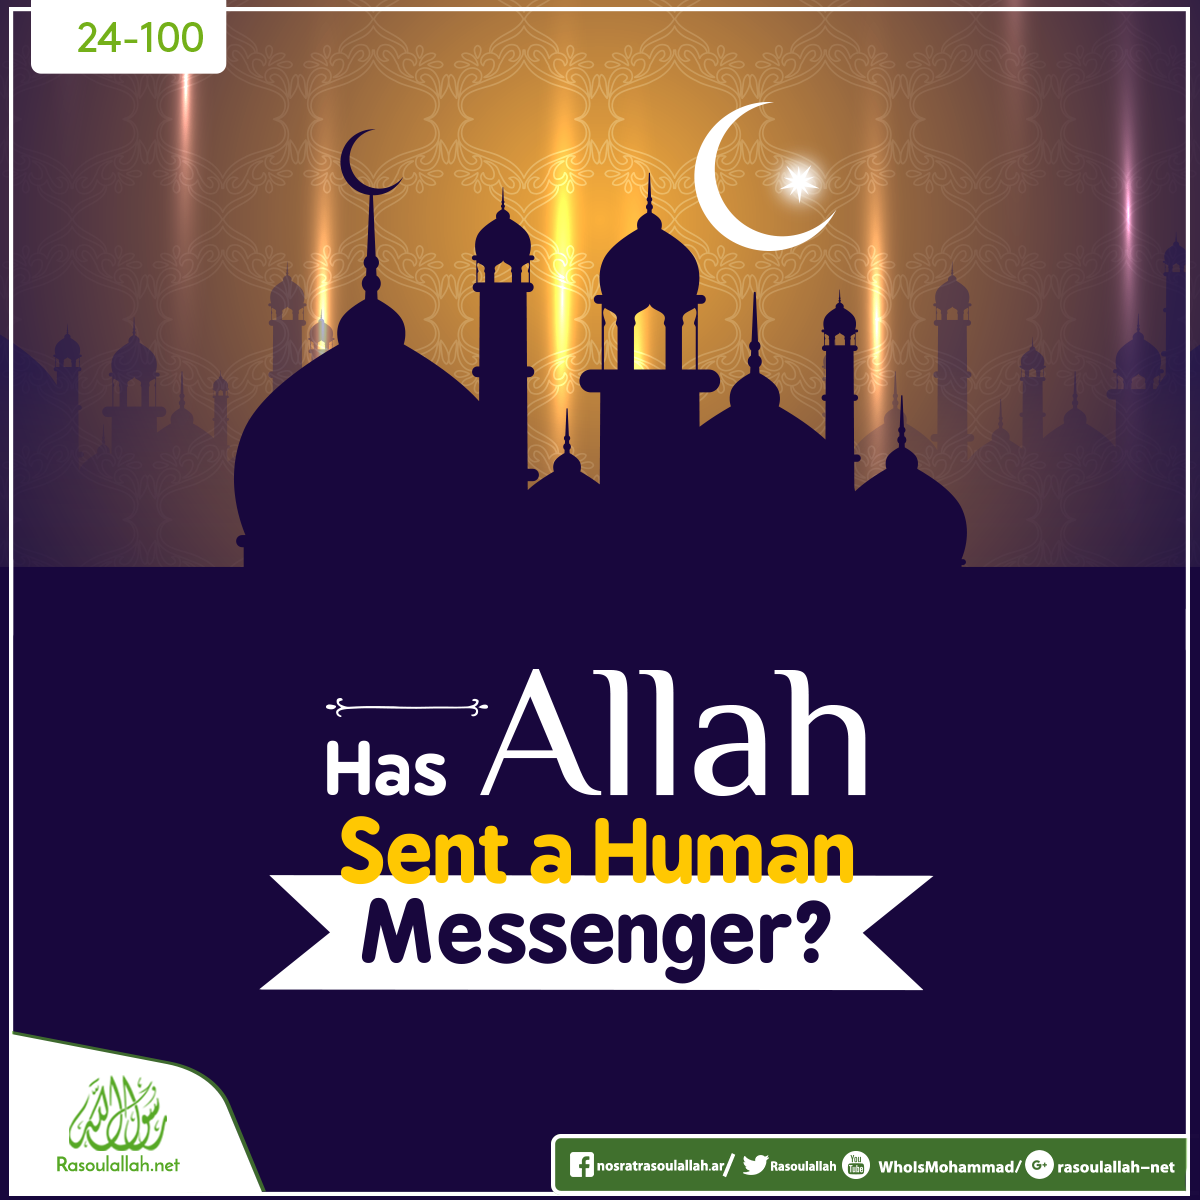 Has Allah sent a human Messenger?